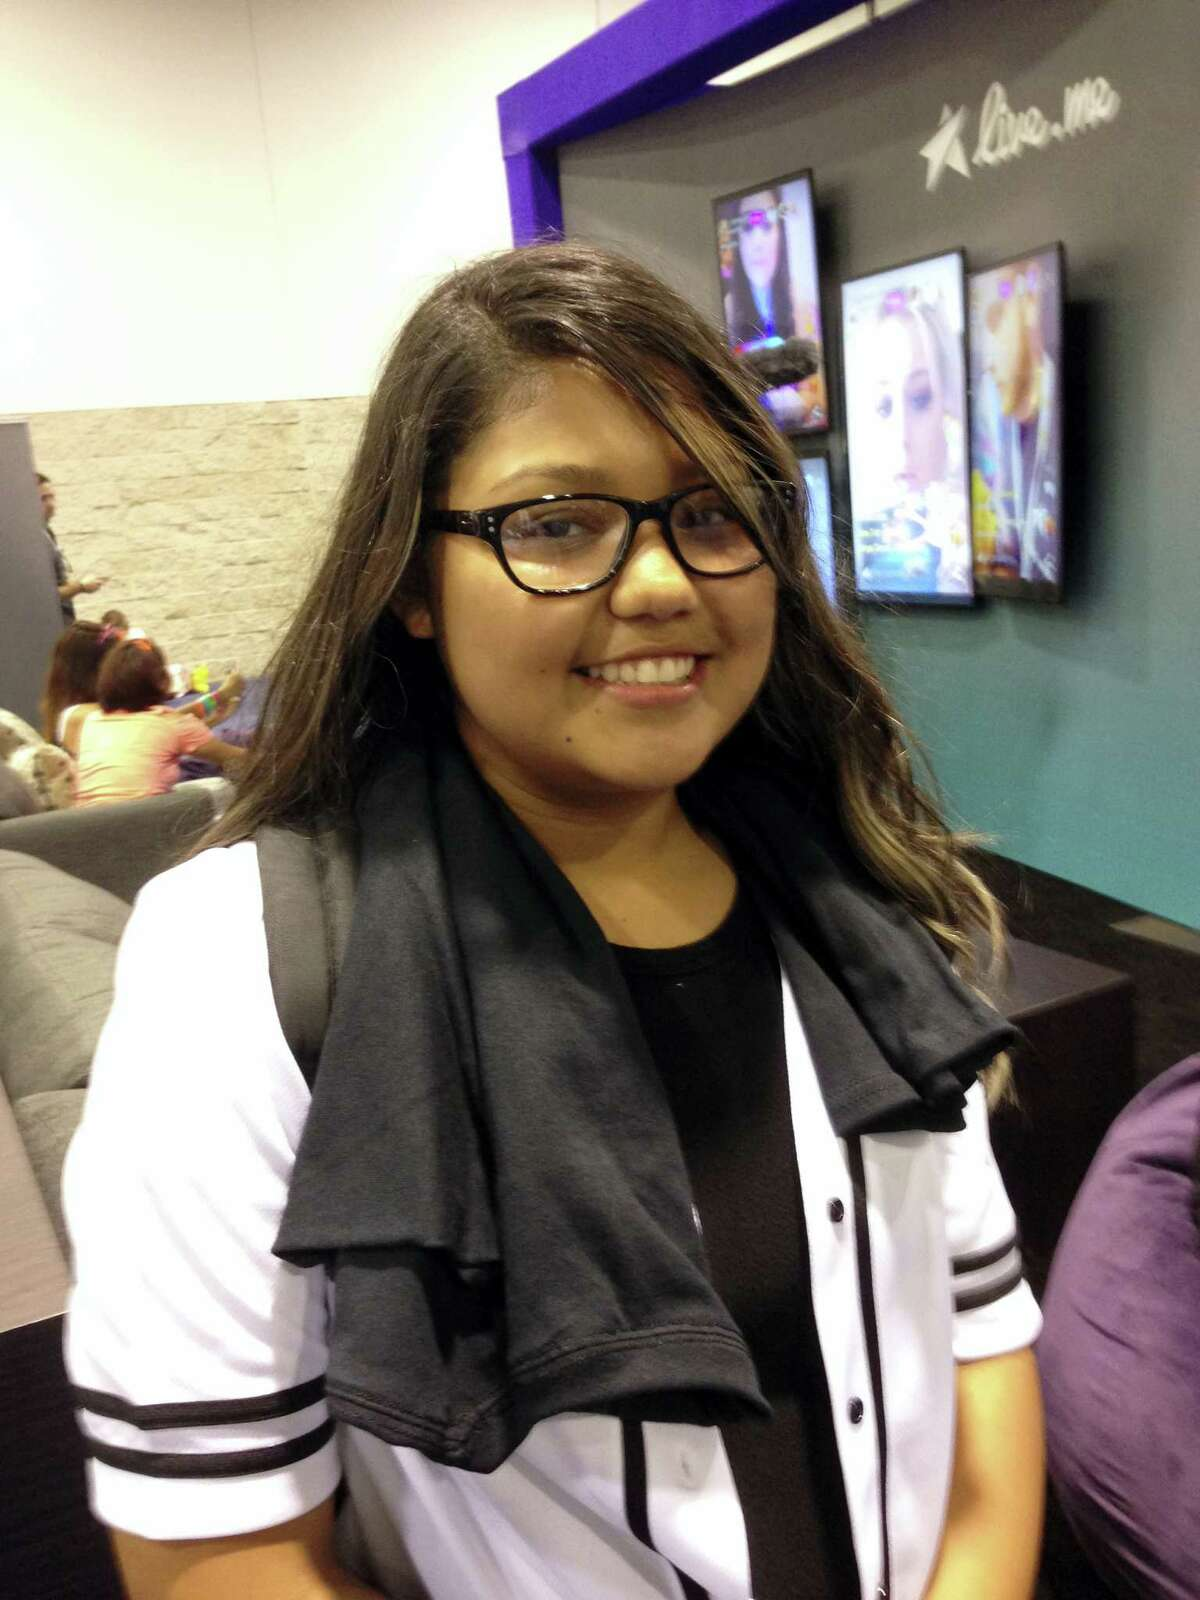 In this Thursday, June 23, 2016, photo, Sandra Alvarez poses for a photo in front of the live.me booth at VidCon, the annual online video convention at the Anaheim Convention Center, in Anaheim, Calif. Alvarez said she used to spend $50 a month, more than half her allowance, tipping broadcasters on YouNow. (AP Photo/Ryan Nakashima)